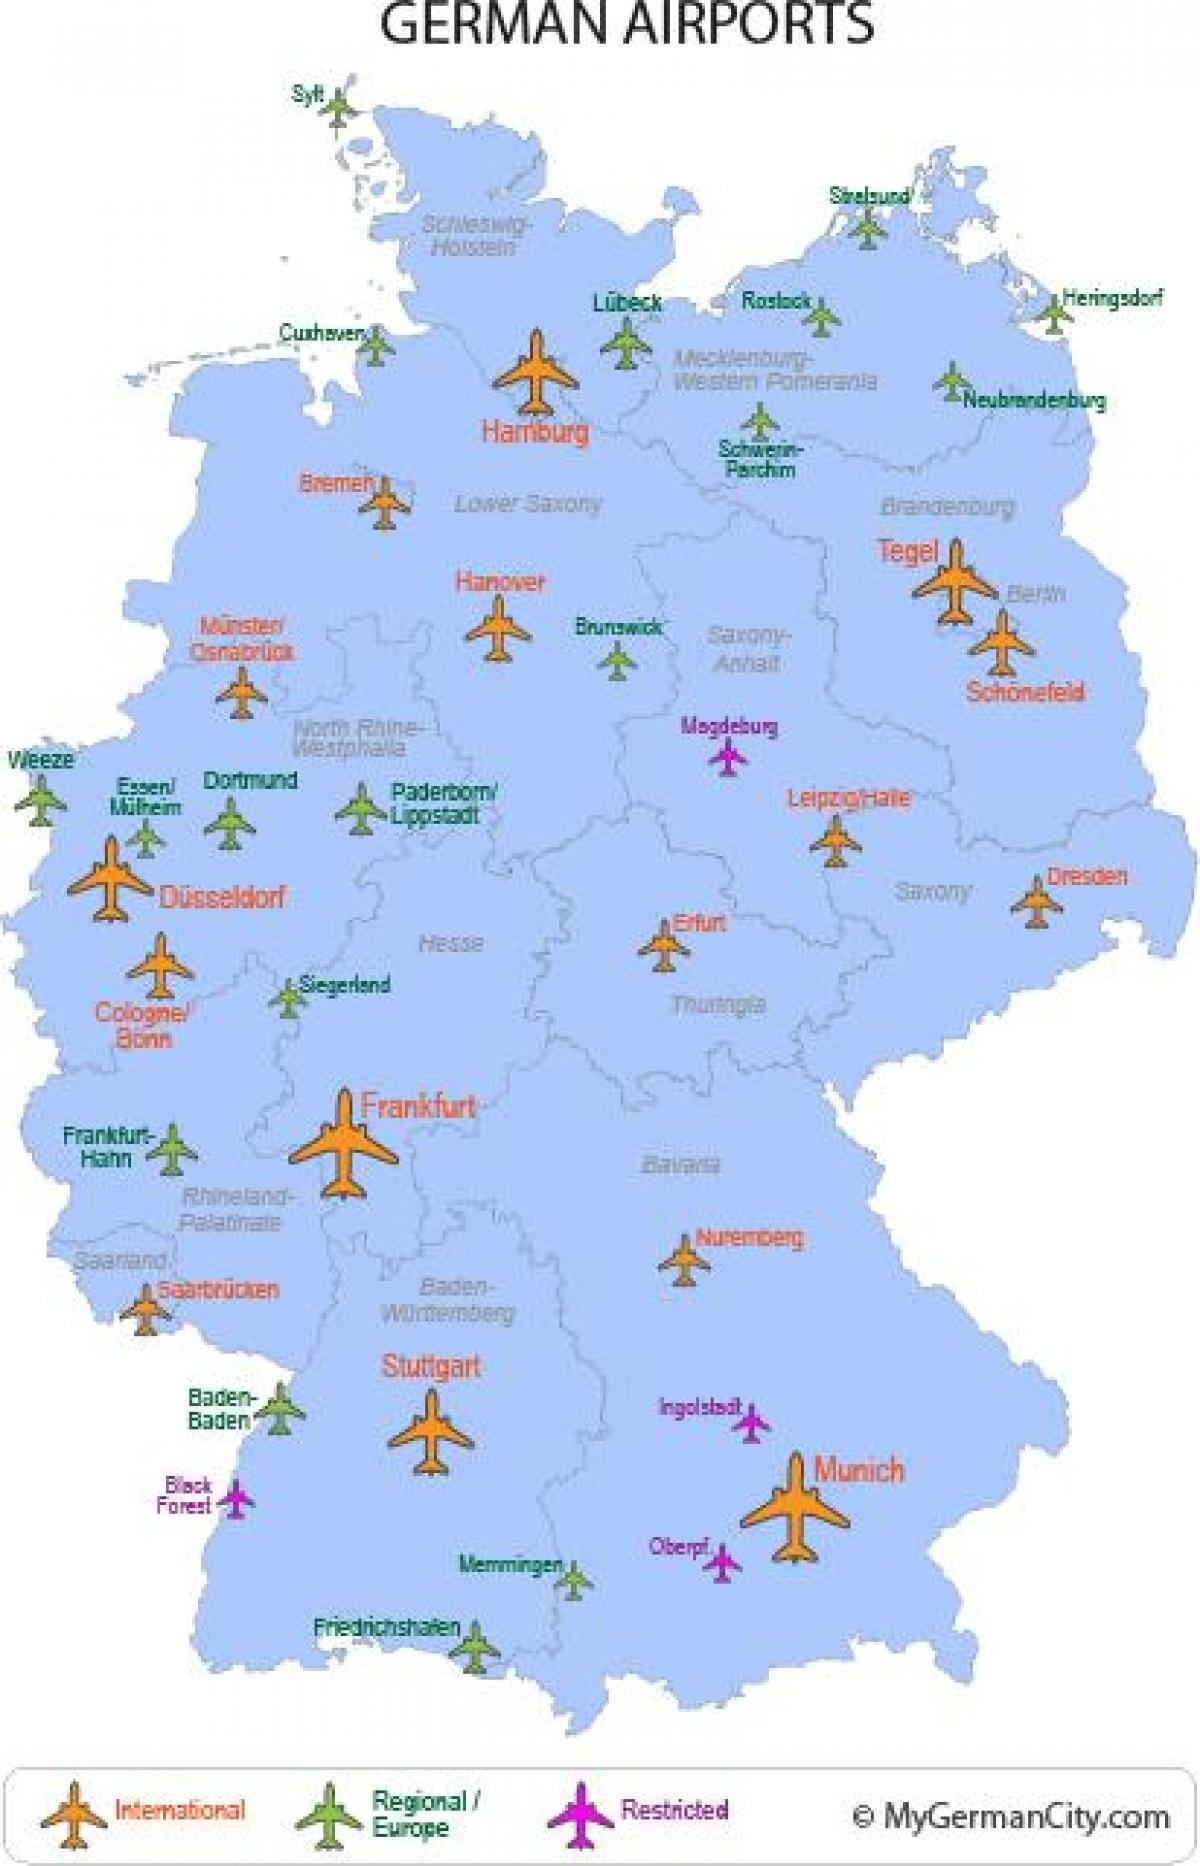 International Airports In Germany Map - Major Airports In Germany for International Airports In Germany Map